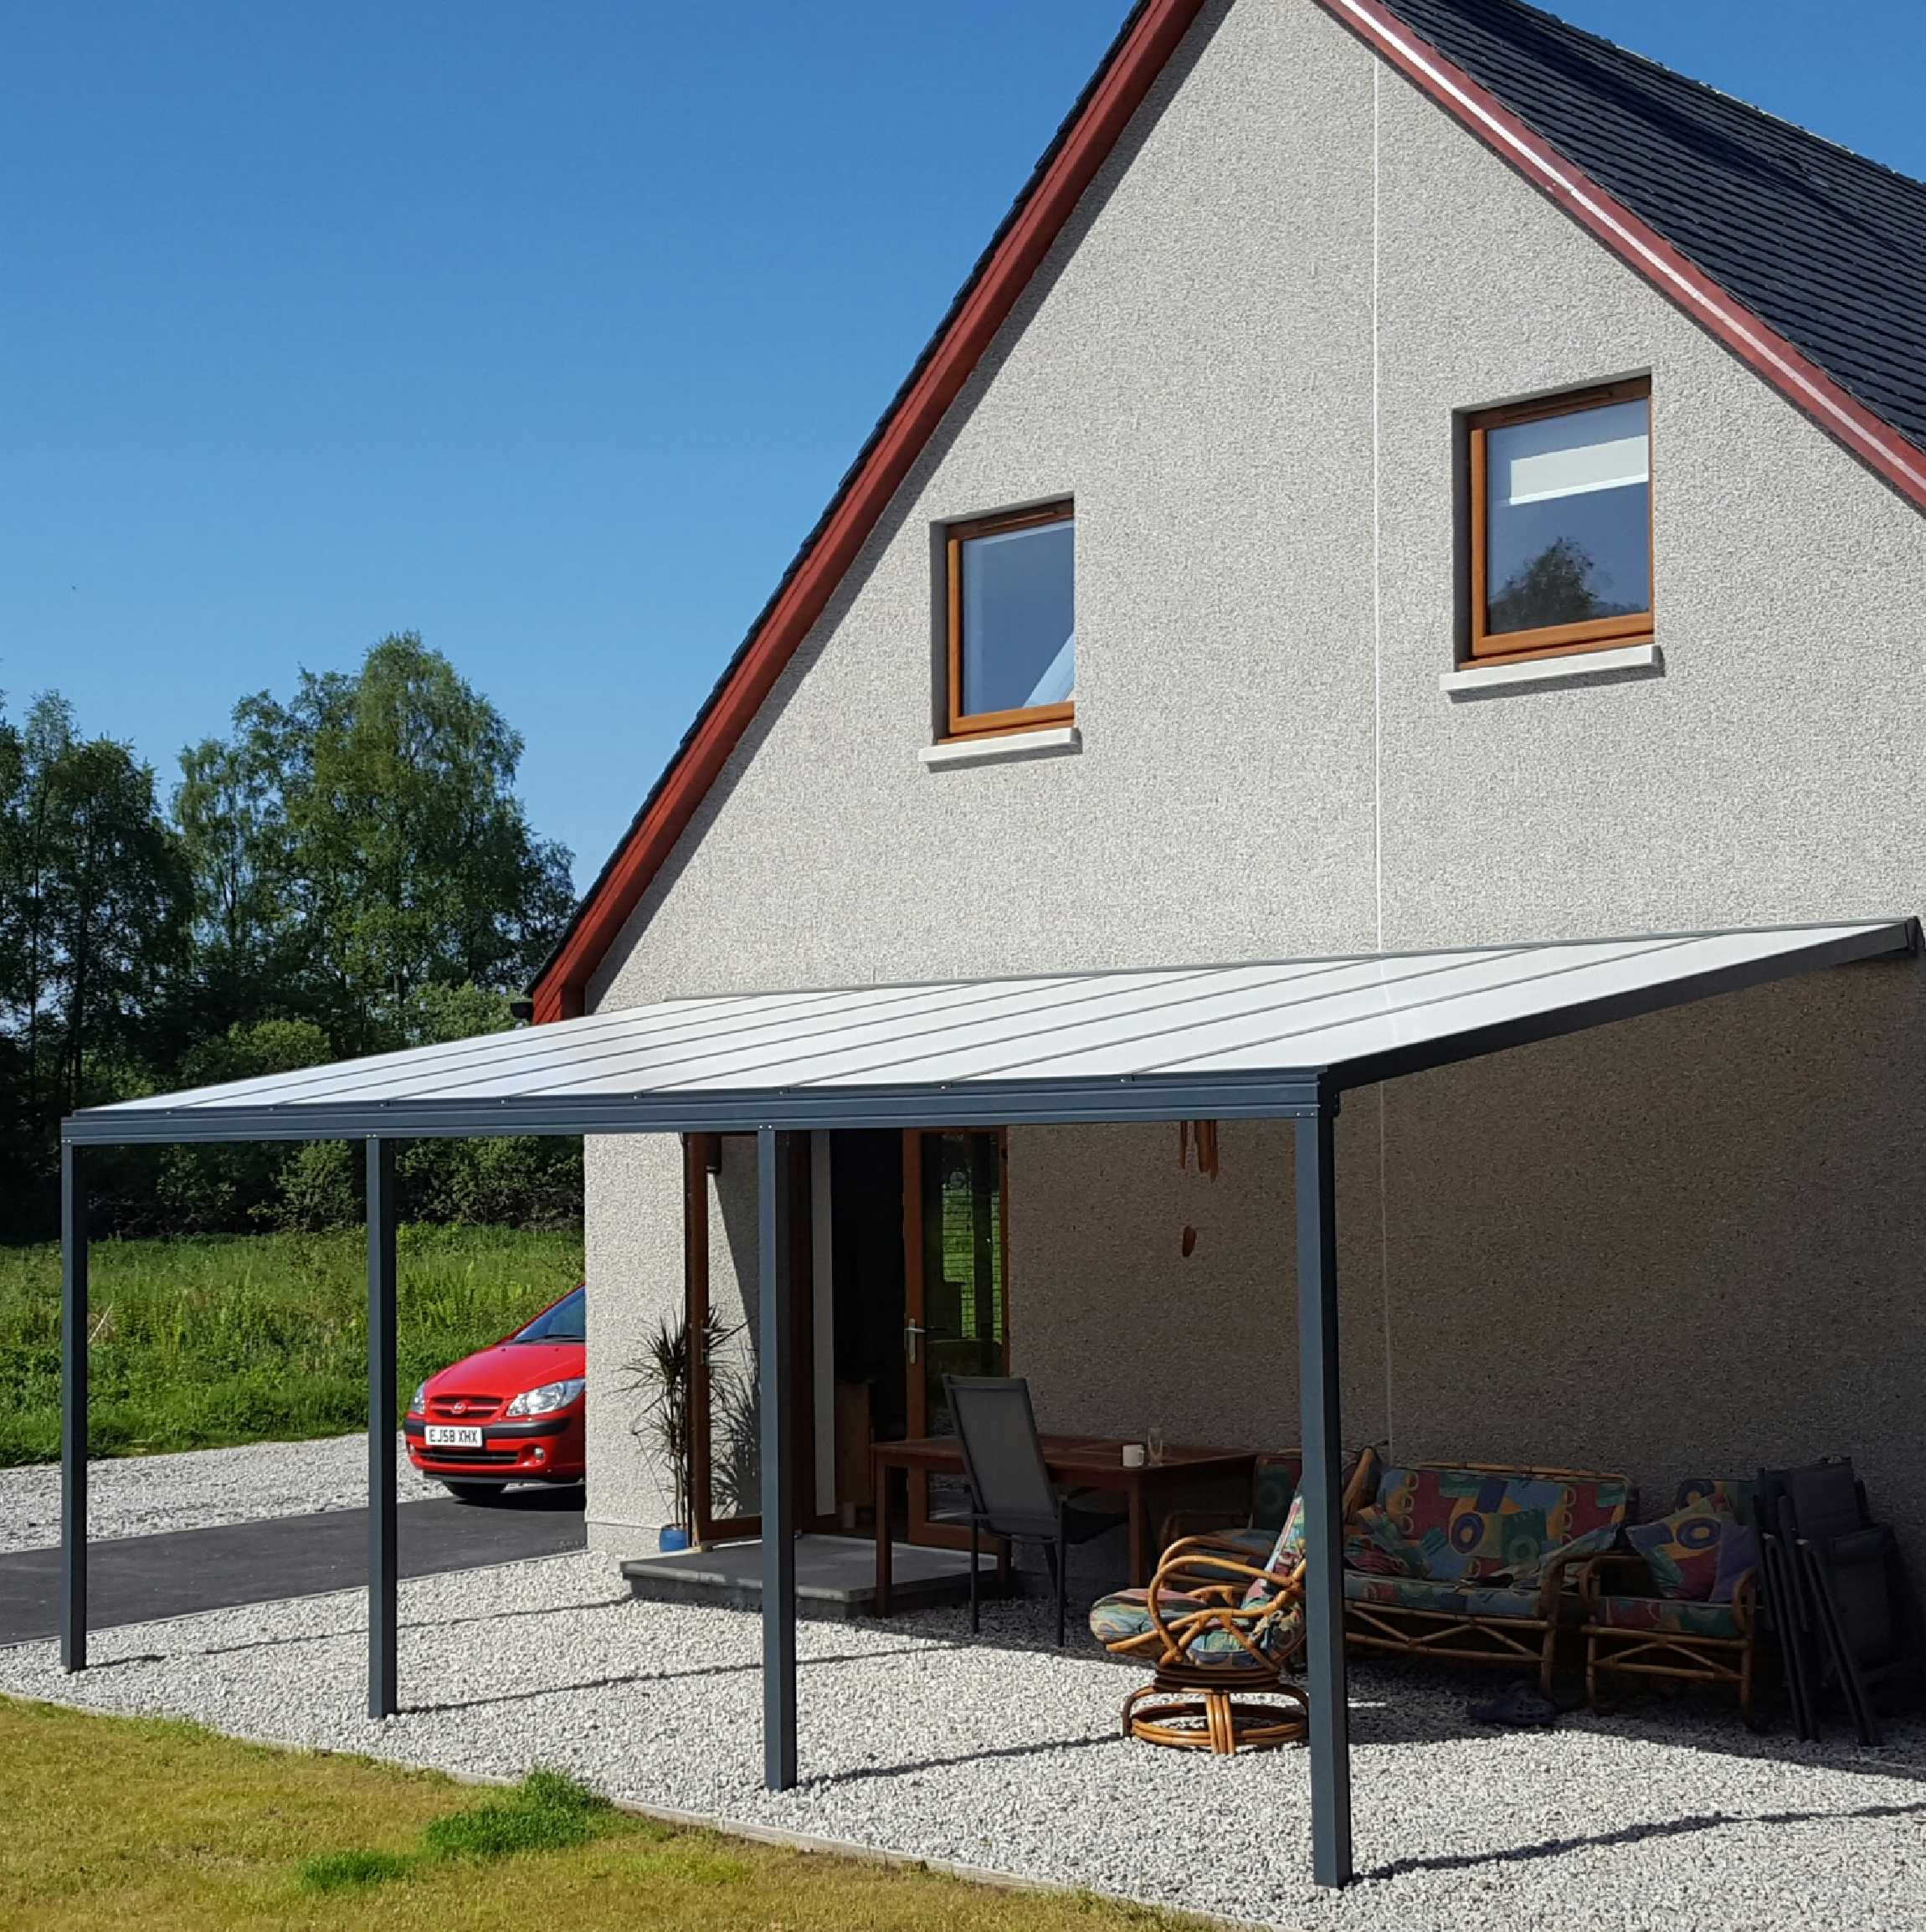 Great selection of Omega Smart Lean-To Canopy, Anthracite Grey, 16mm Polycarbonate Glazing - 3.1m (W) x 2.0m (P), (2) Supporting Posts